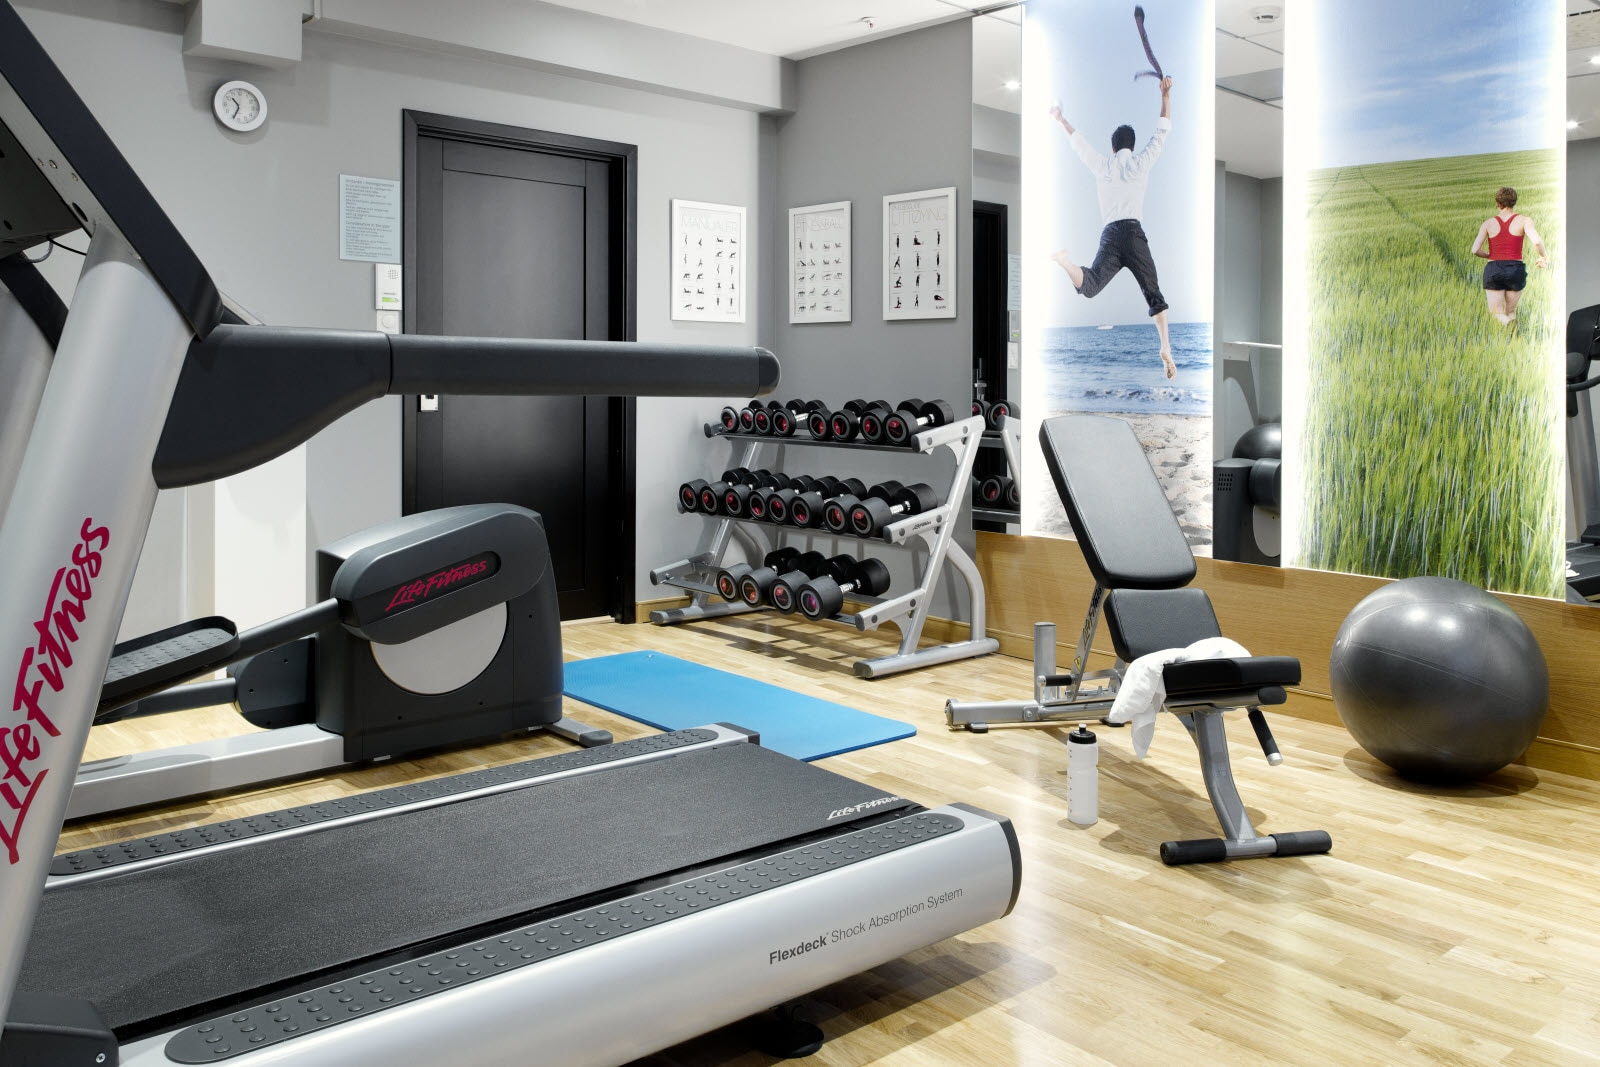 scandic-holberg-gym.jpg